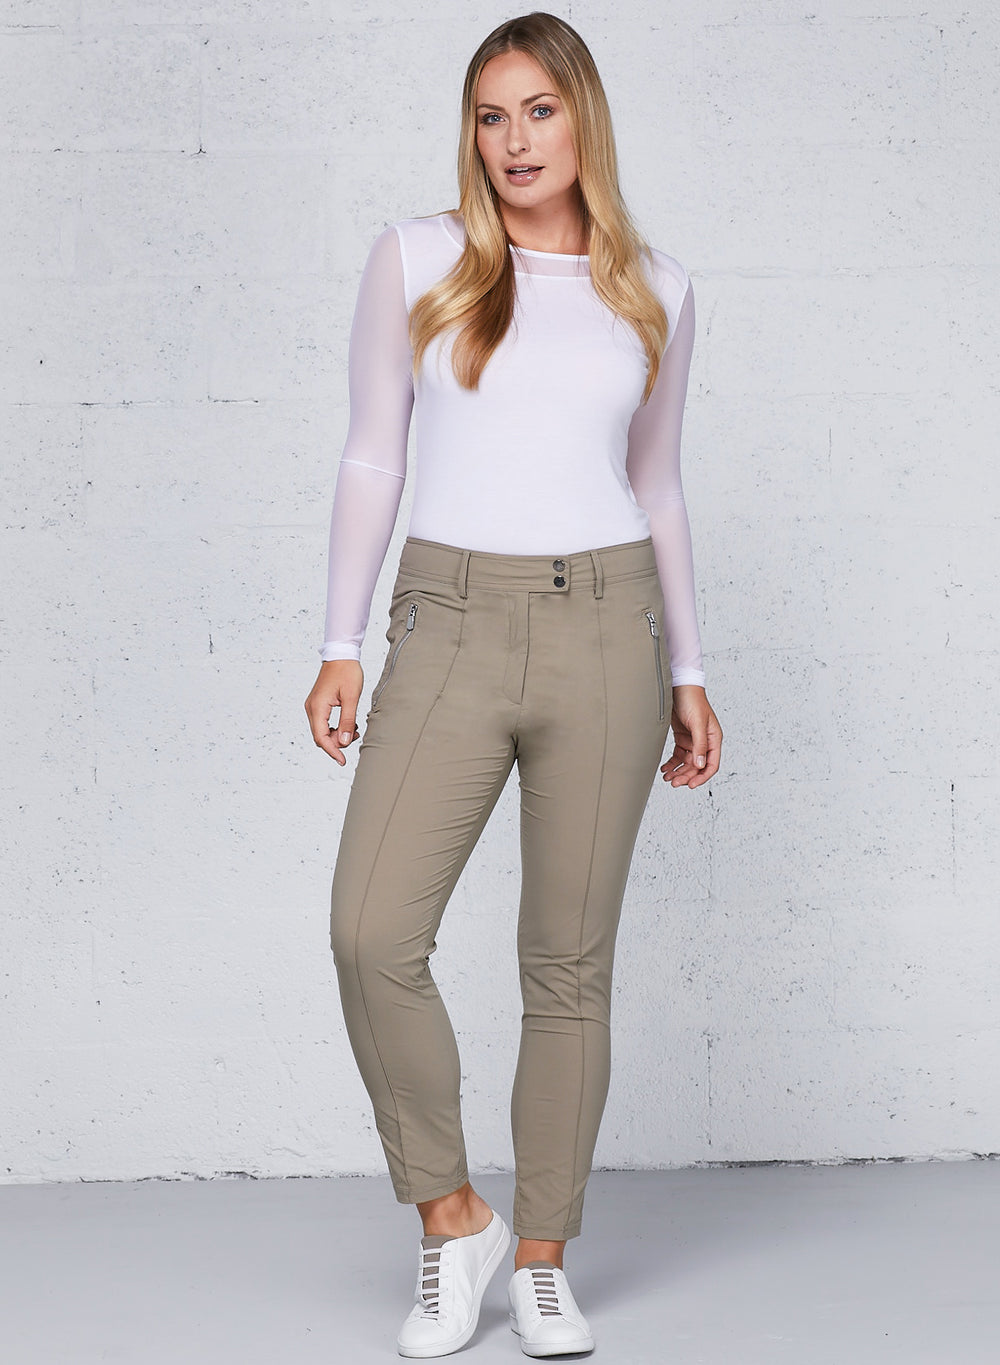 Khaki||||Essential_As8412_Peggy_Pant_7400-Khaki_2578-55.mp4